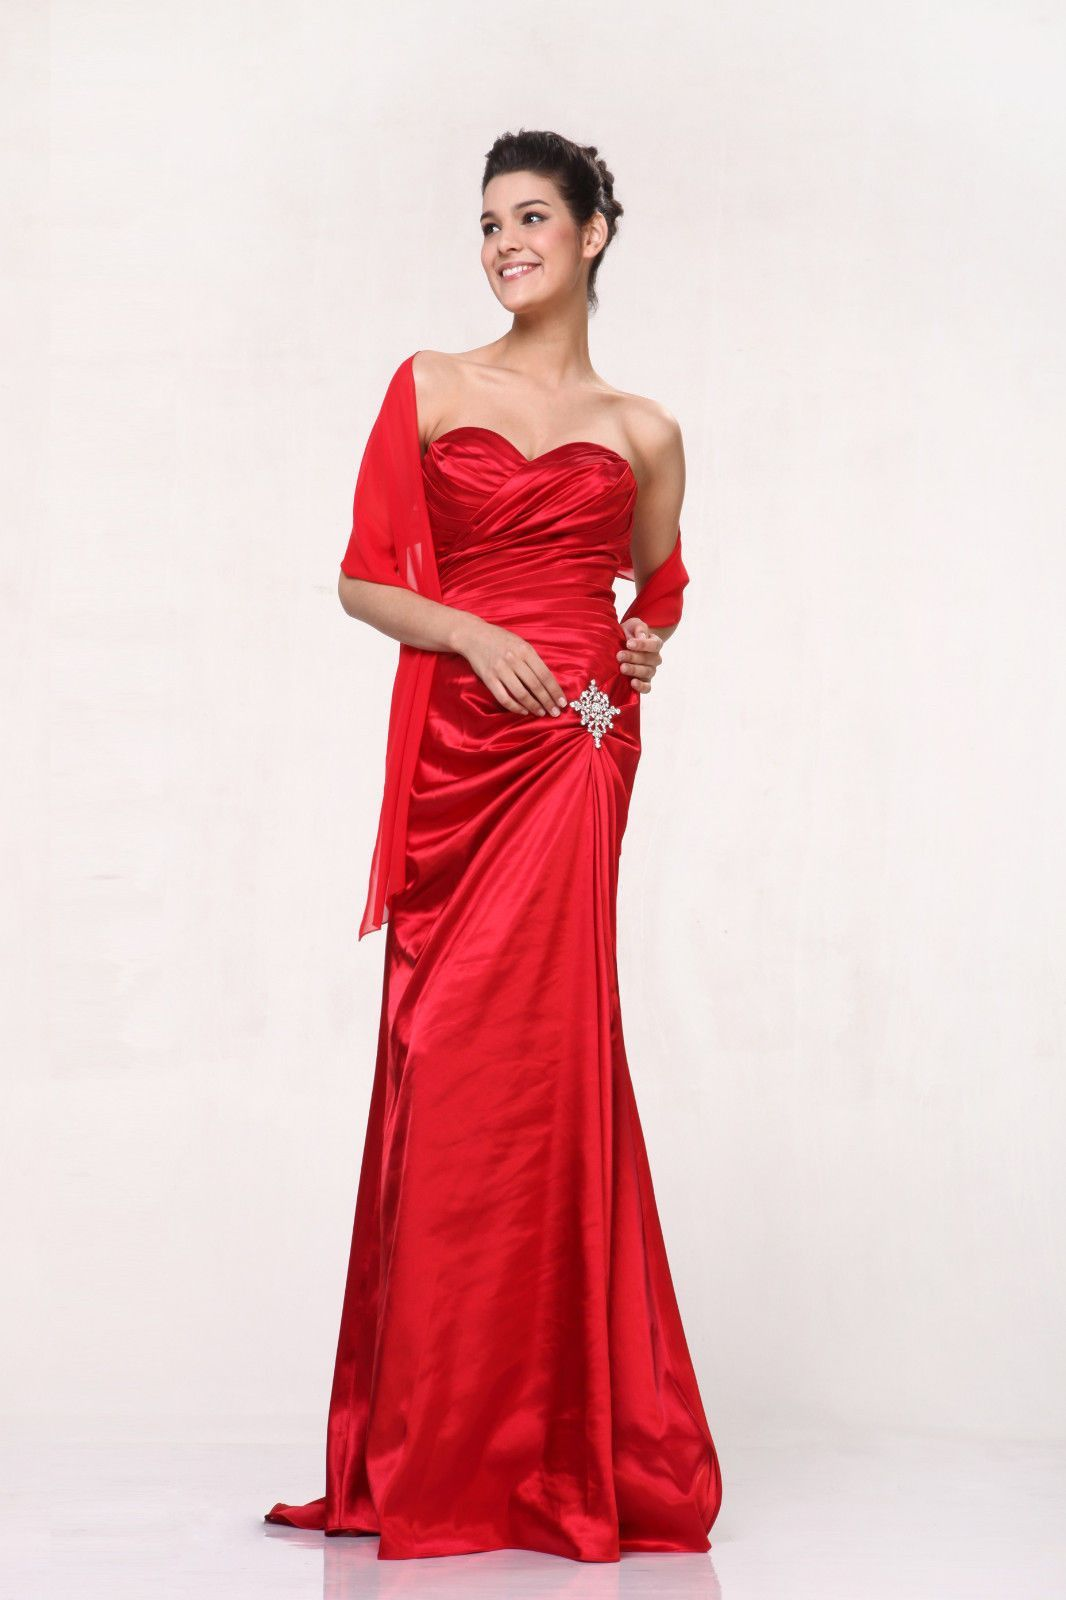 This classic sweetheart neckline is perfect for any occasion the